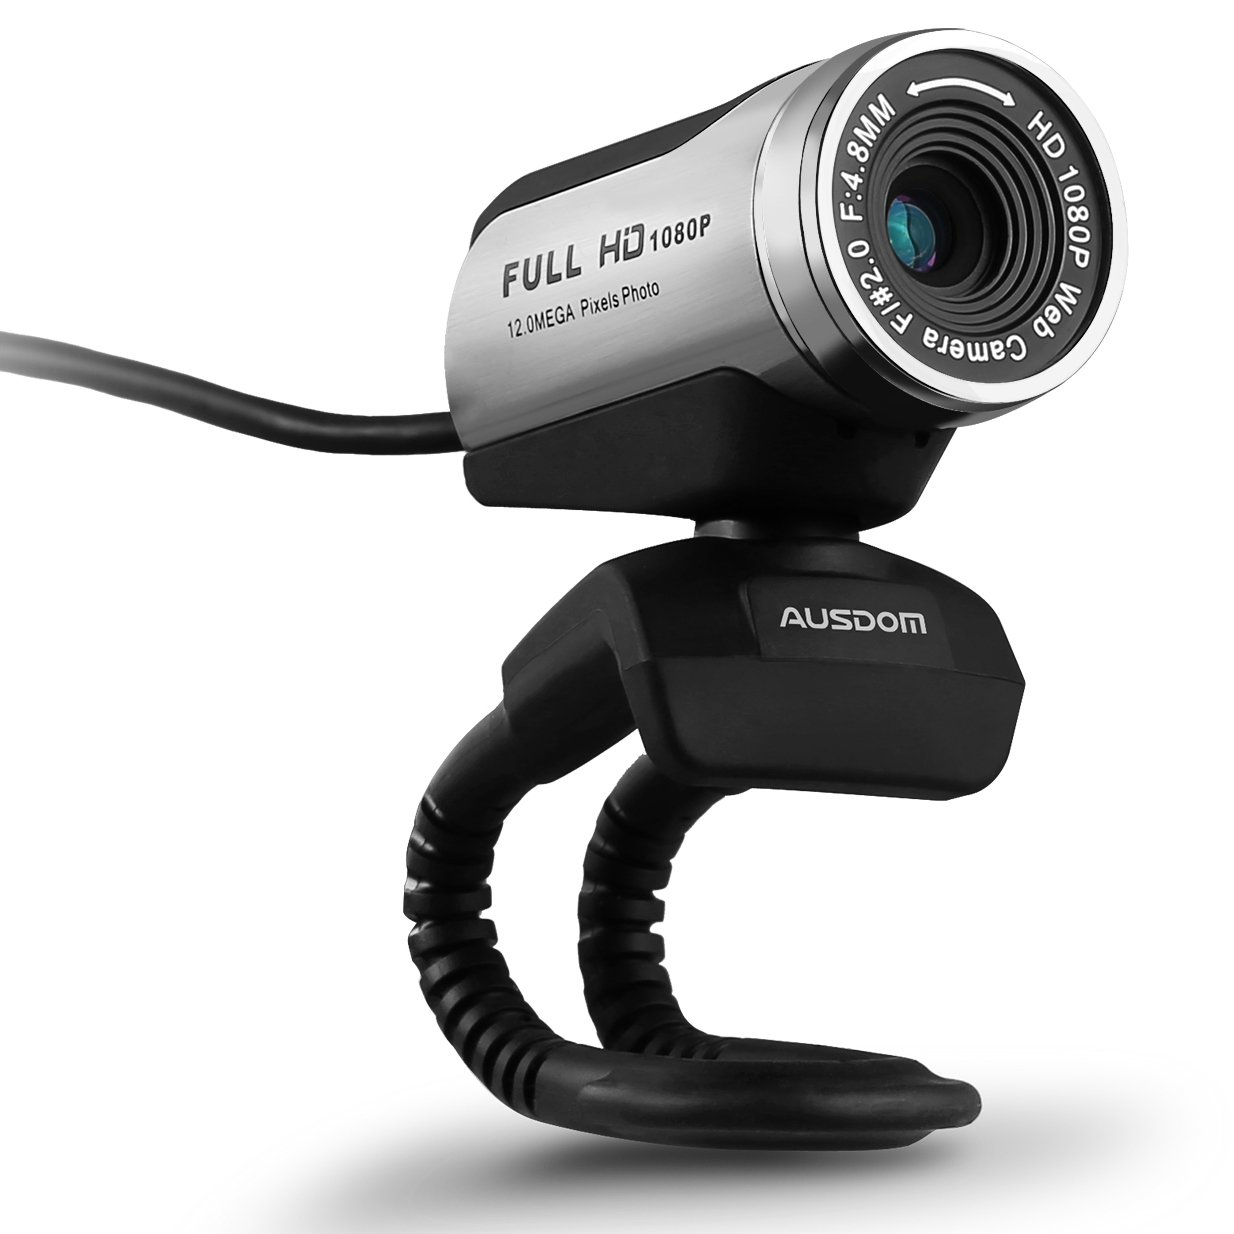 AUSDOM Webcam 1080p Video Calling and Recording, Web camera with Built-in Microphone for Laptops/Desktop/Computer AW615